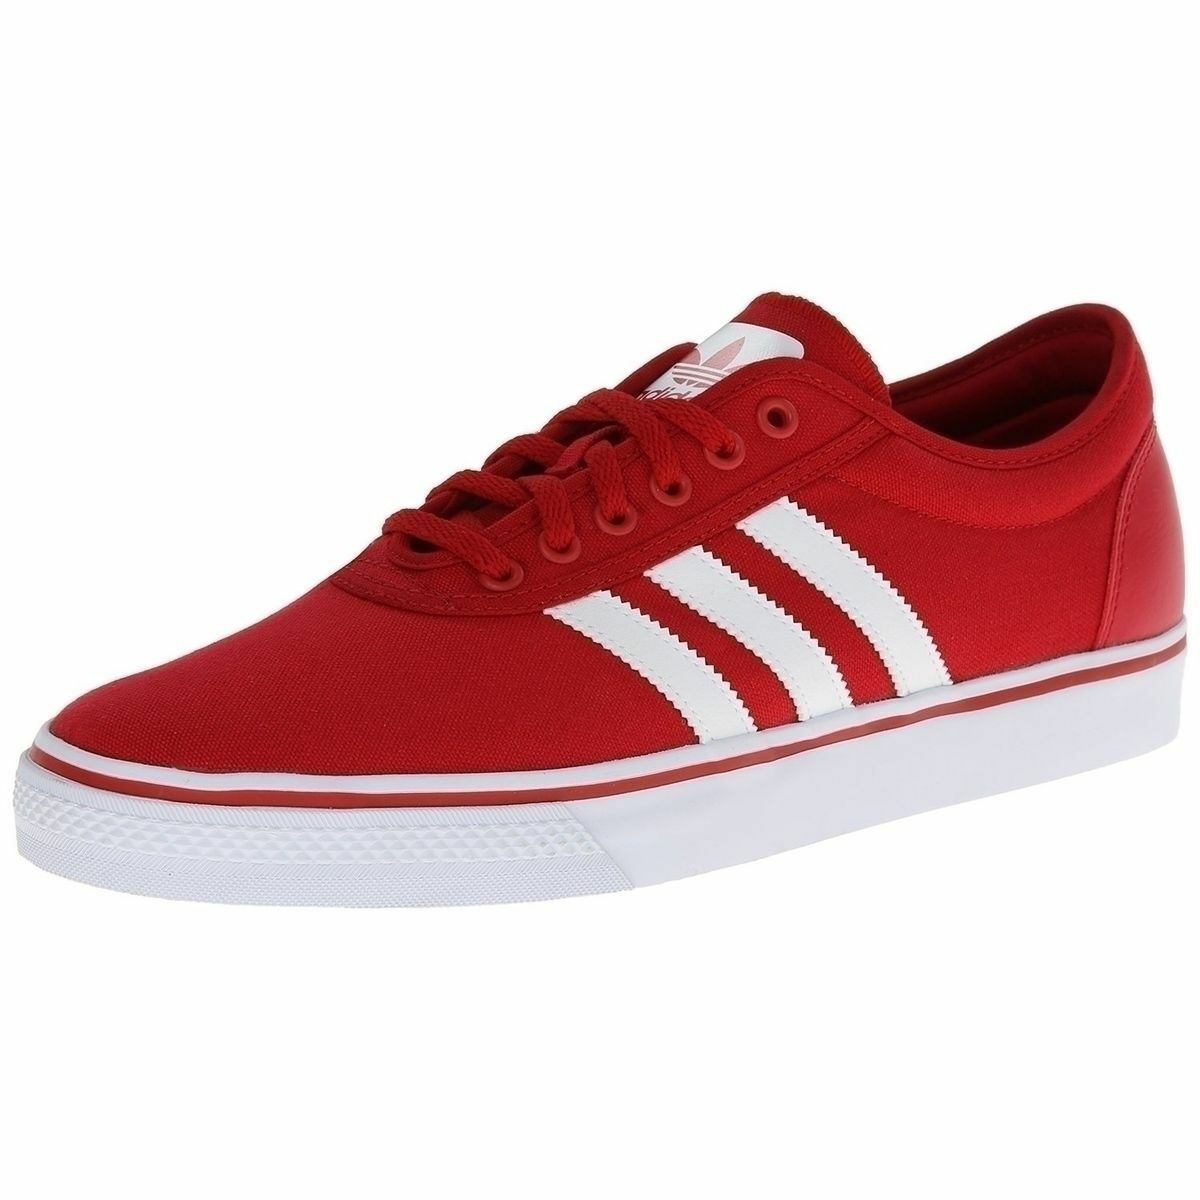 ADIDAS ADI-EASY LOW SNEAKERS MEN SHOES RED WHITE C75612 SIZE 12 NEW